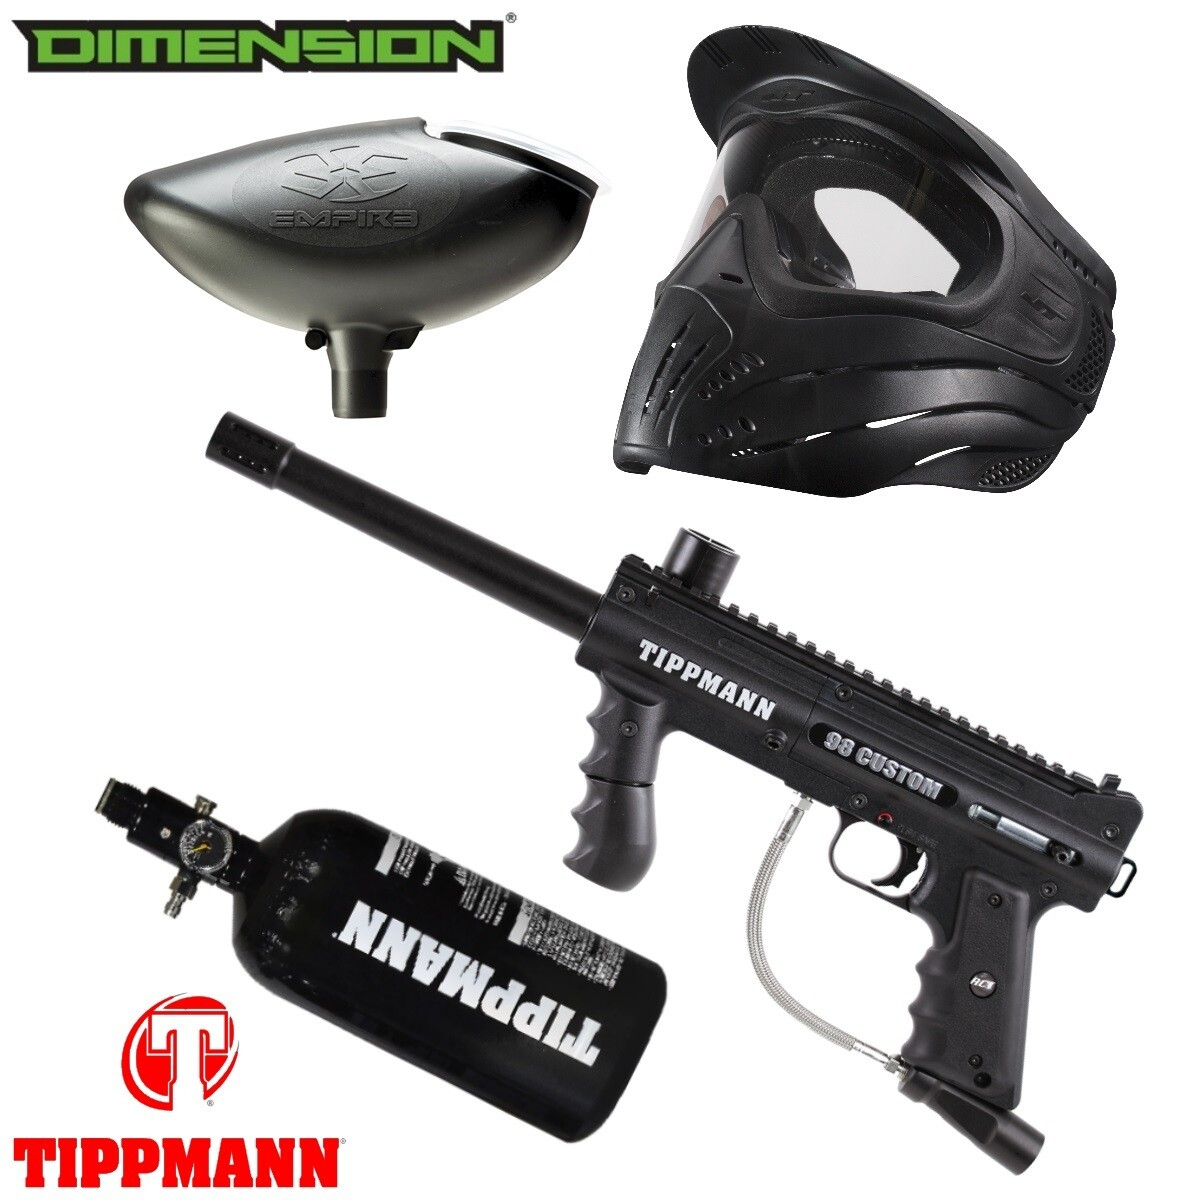 Marker Package - Tippmann 98 CUSTOM PS ULTRA BASIC Marker / 200 Rnd. Loader / Premise Mask Single / 48cu 3000 psi Air Tank